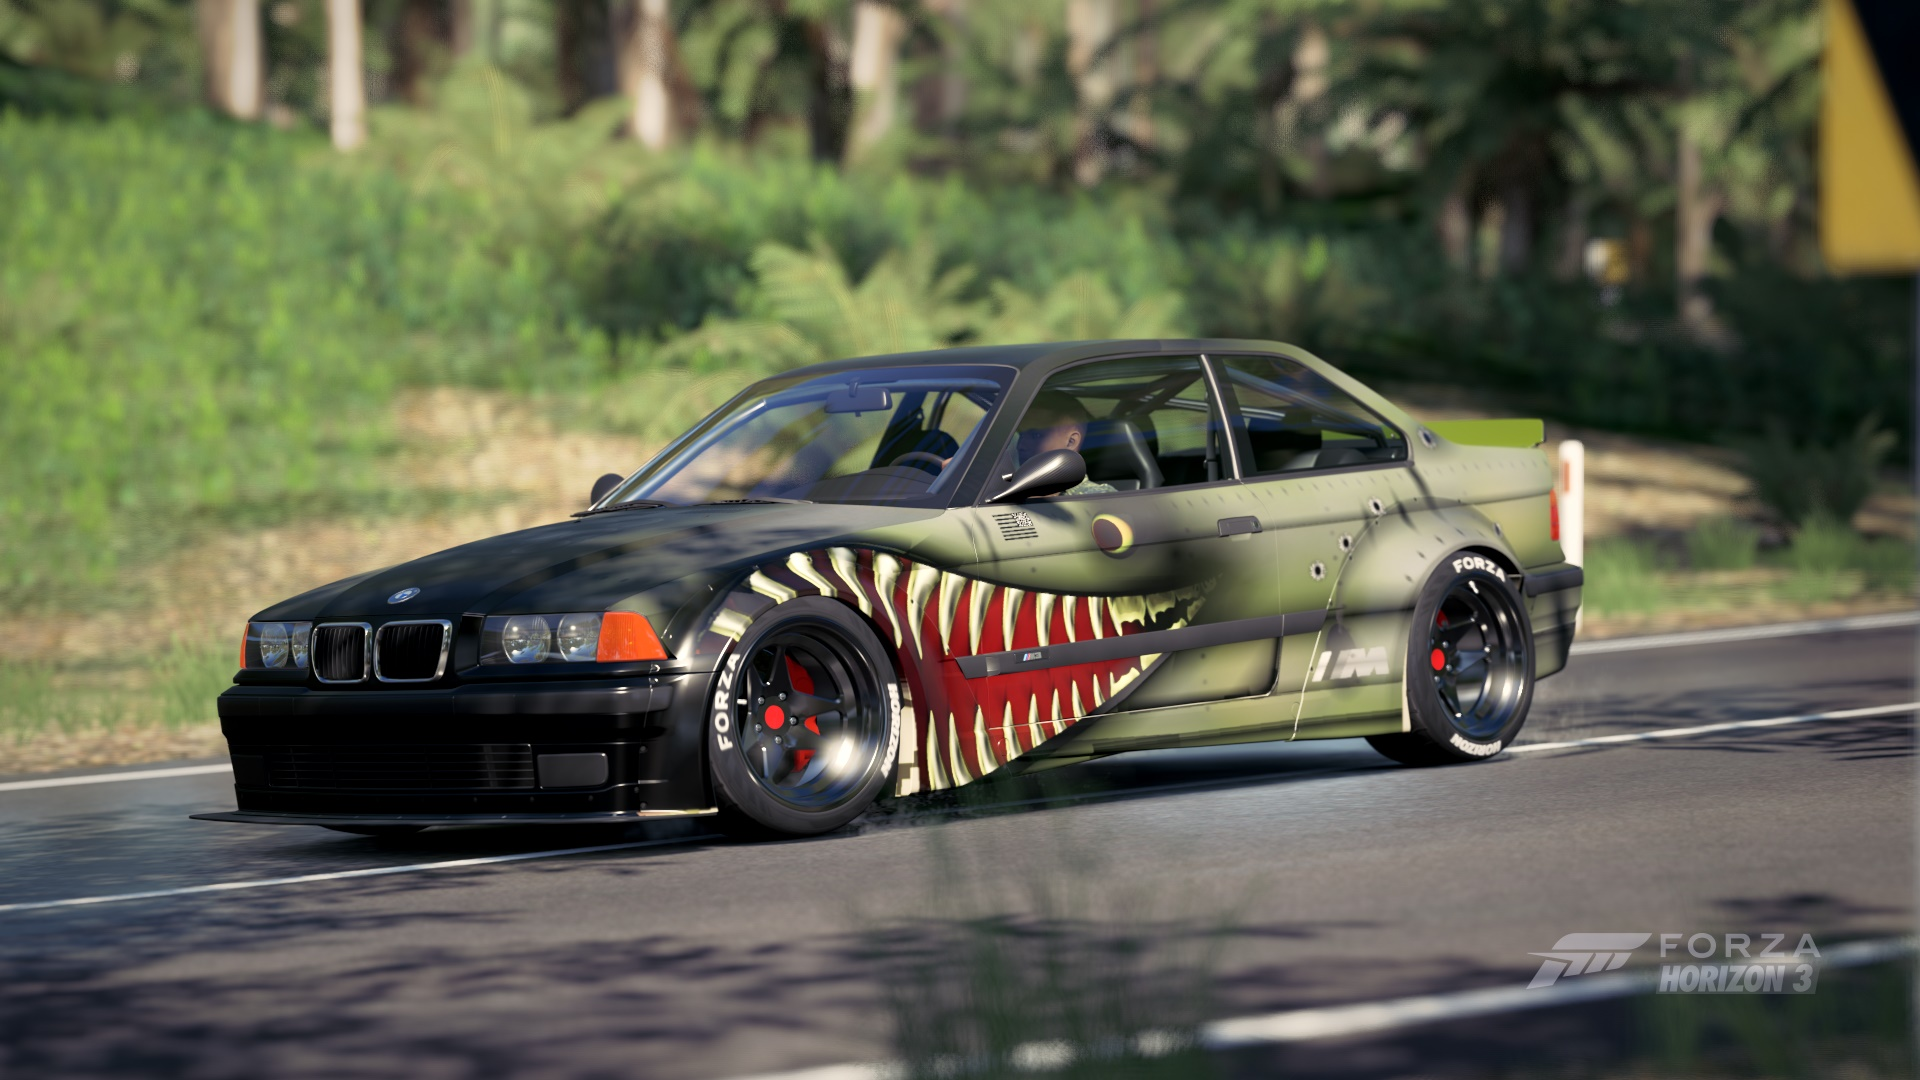 Forza Horizon 3 Livery Contests 2 Page 3 Contest Archive Forza Motorsport Forums